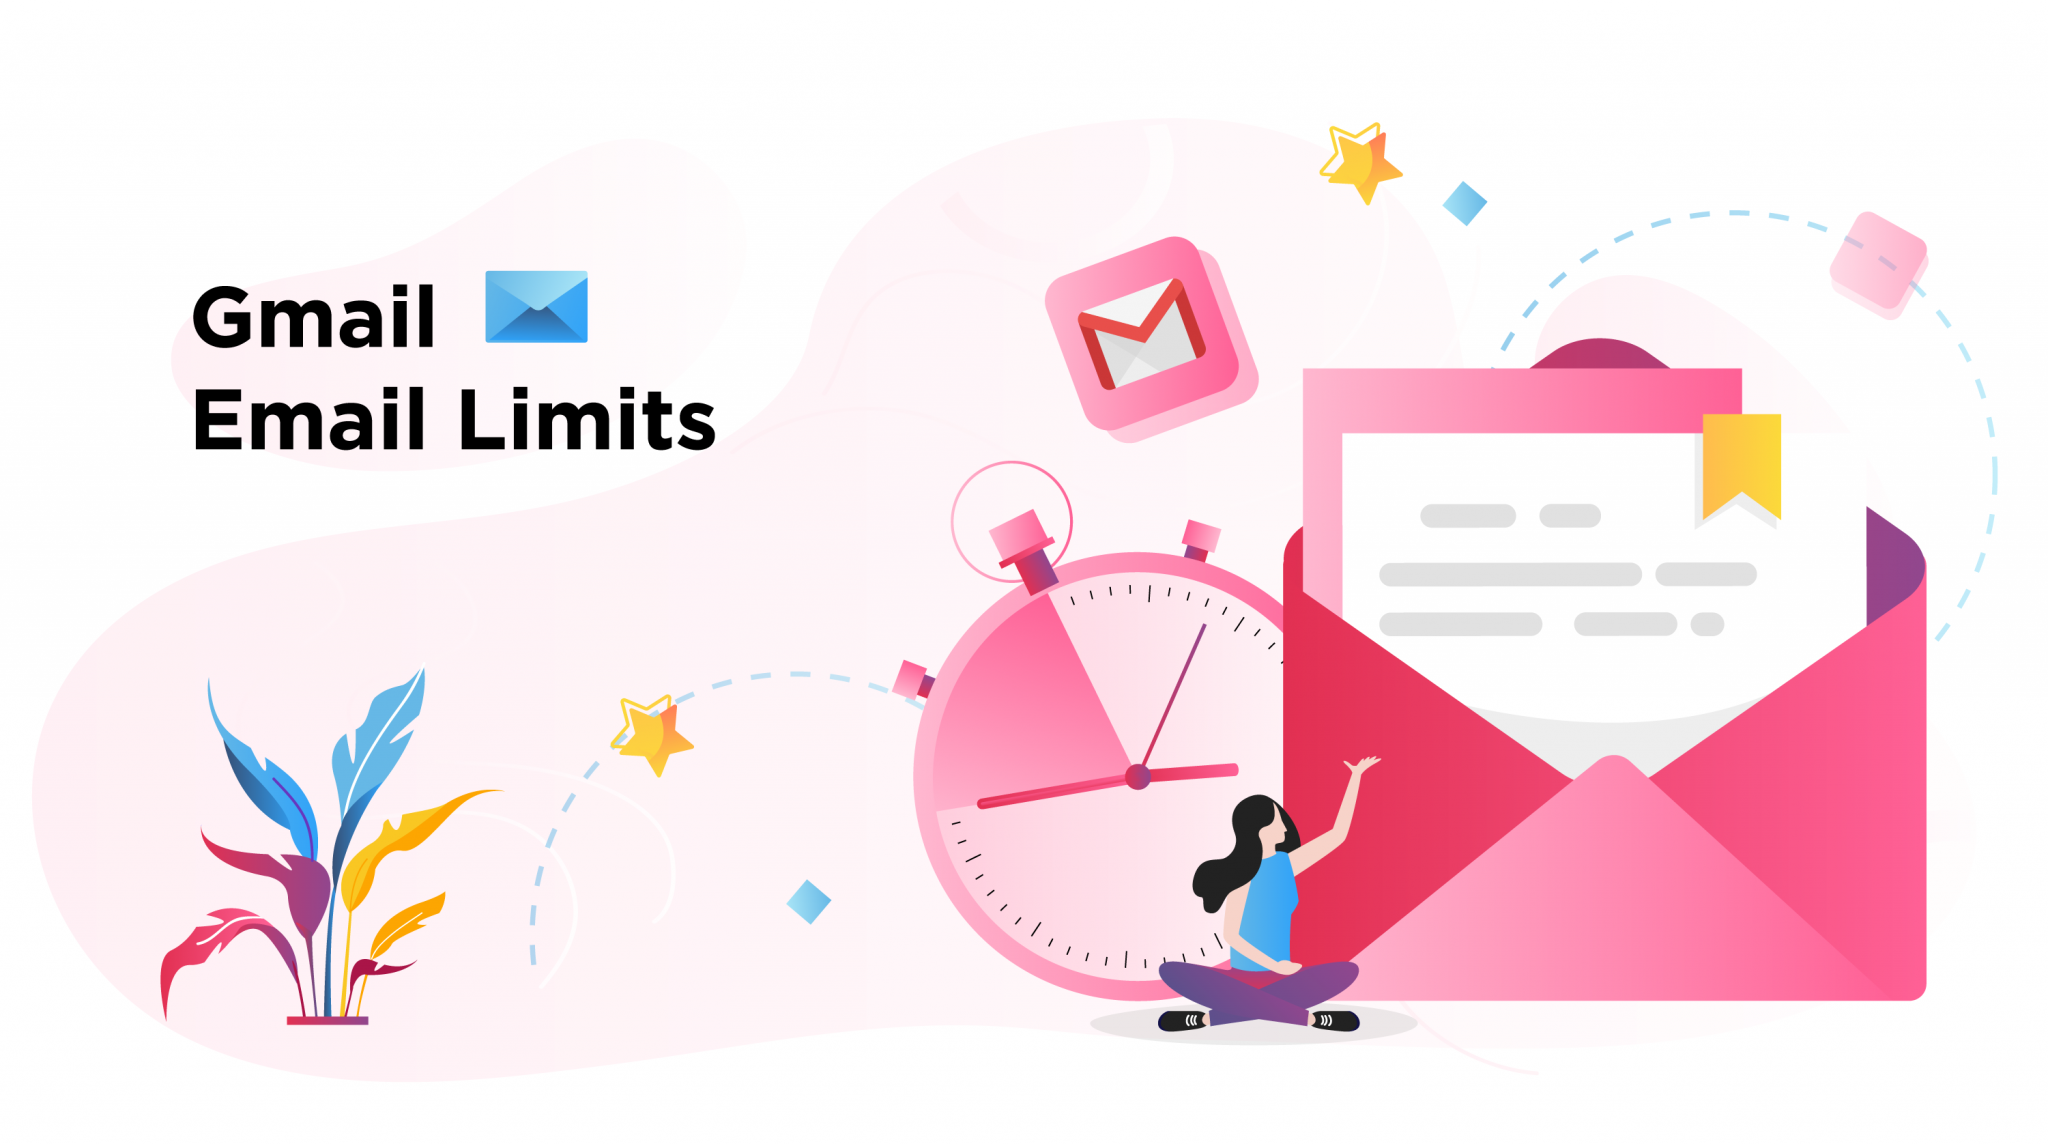 gmail email limits header